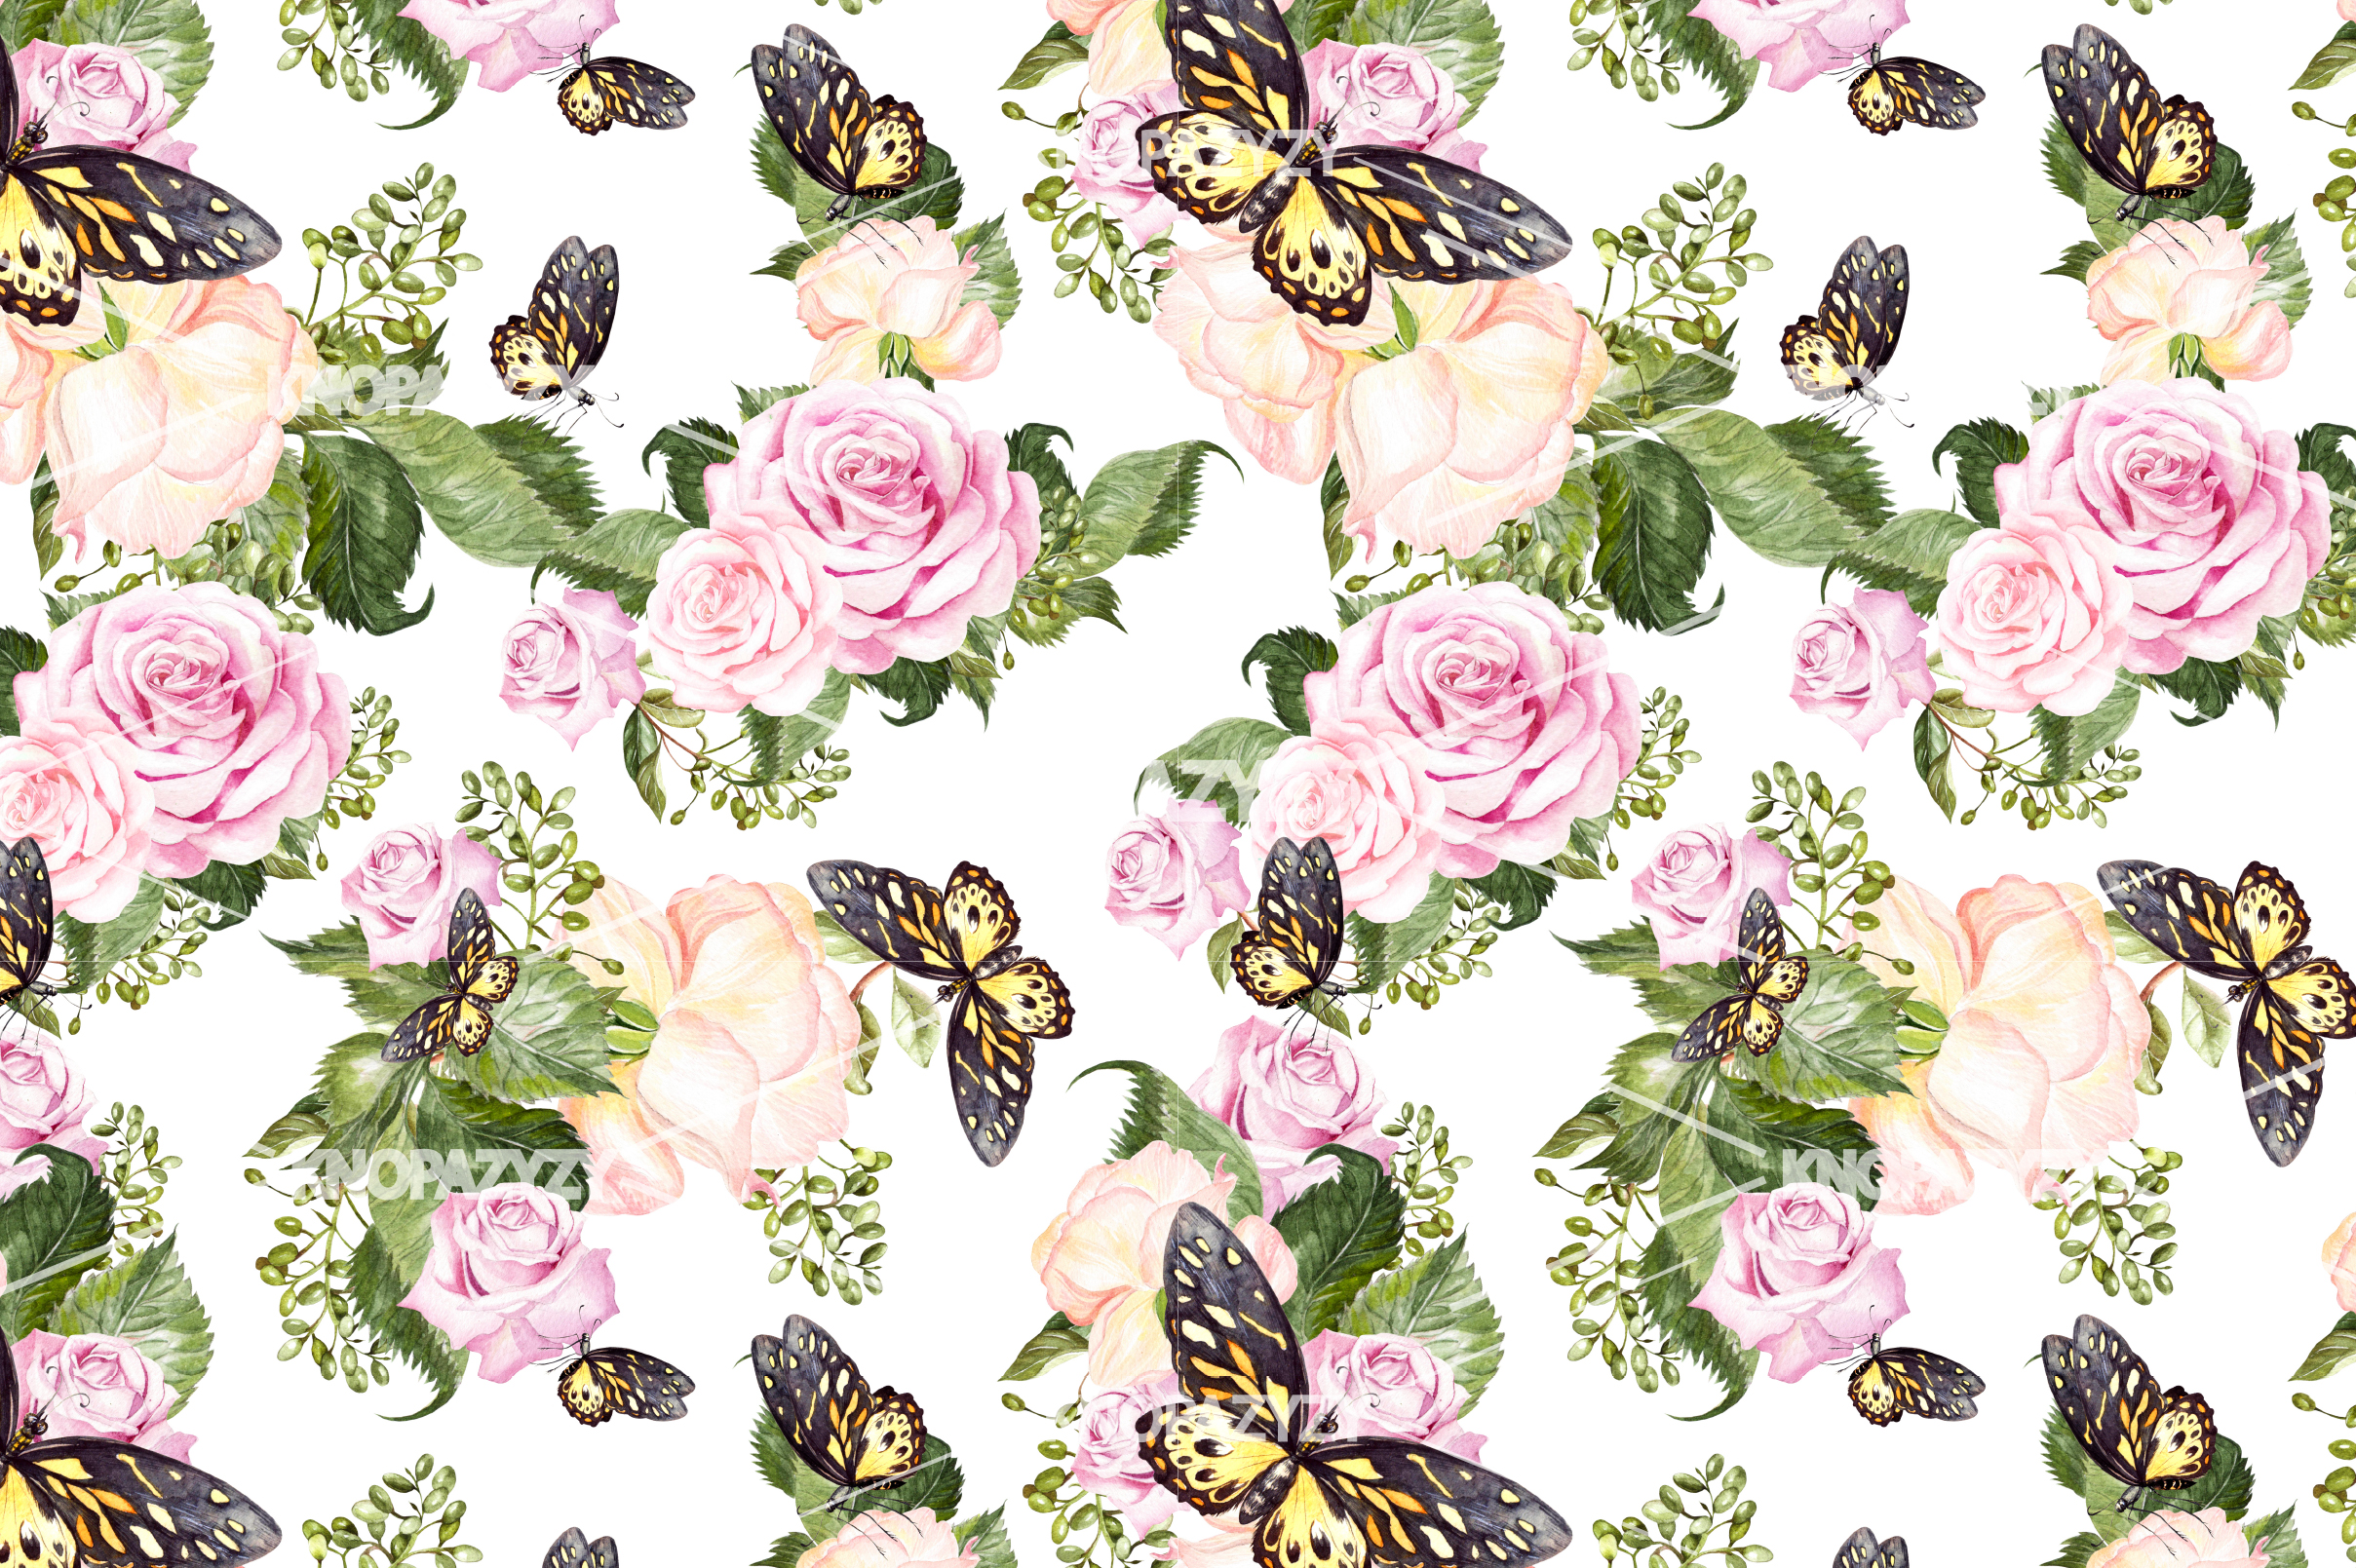 14 Hand drawn watercolor patterns example image 6